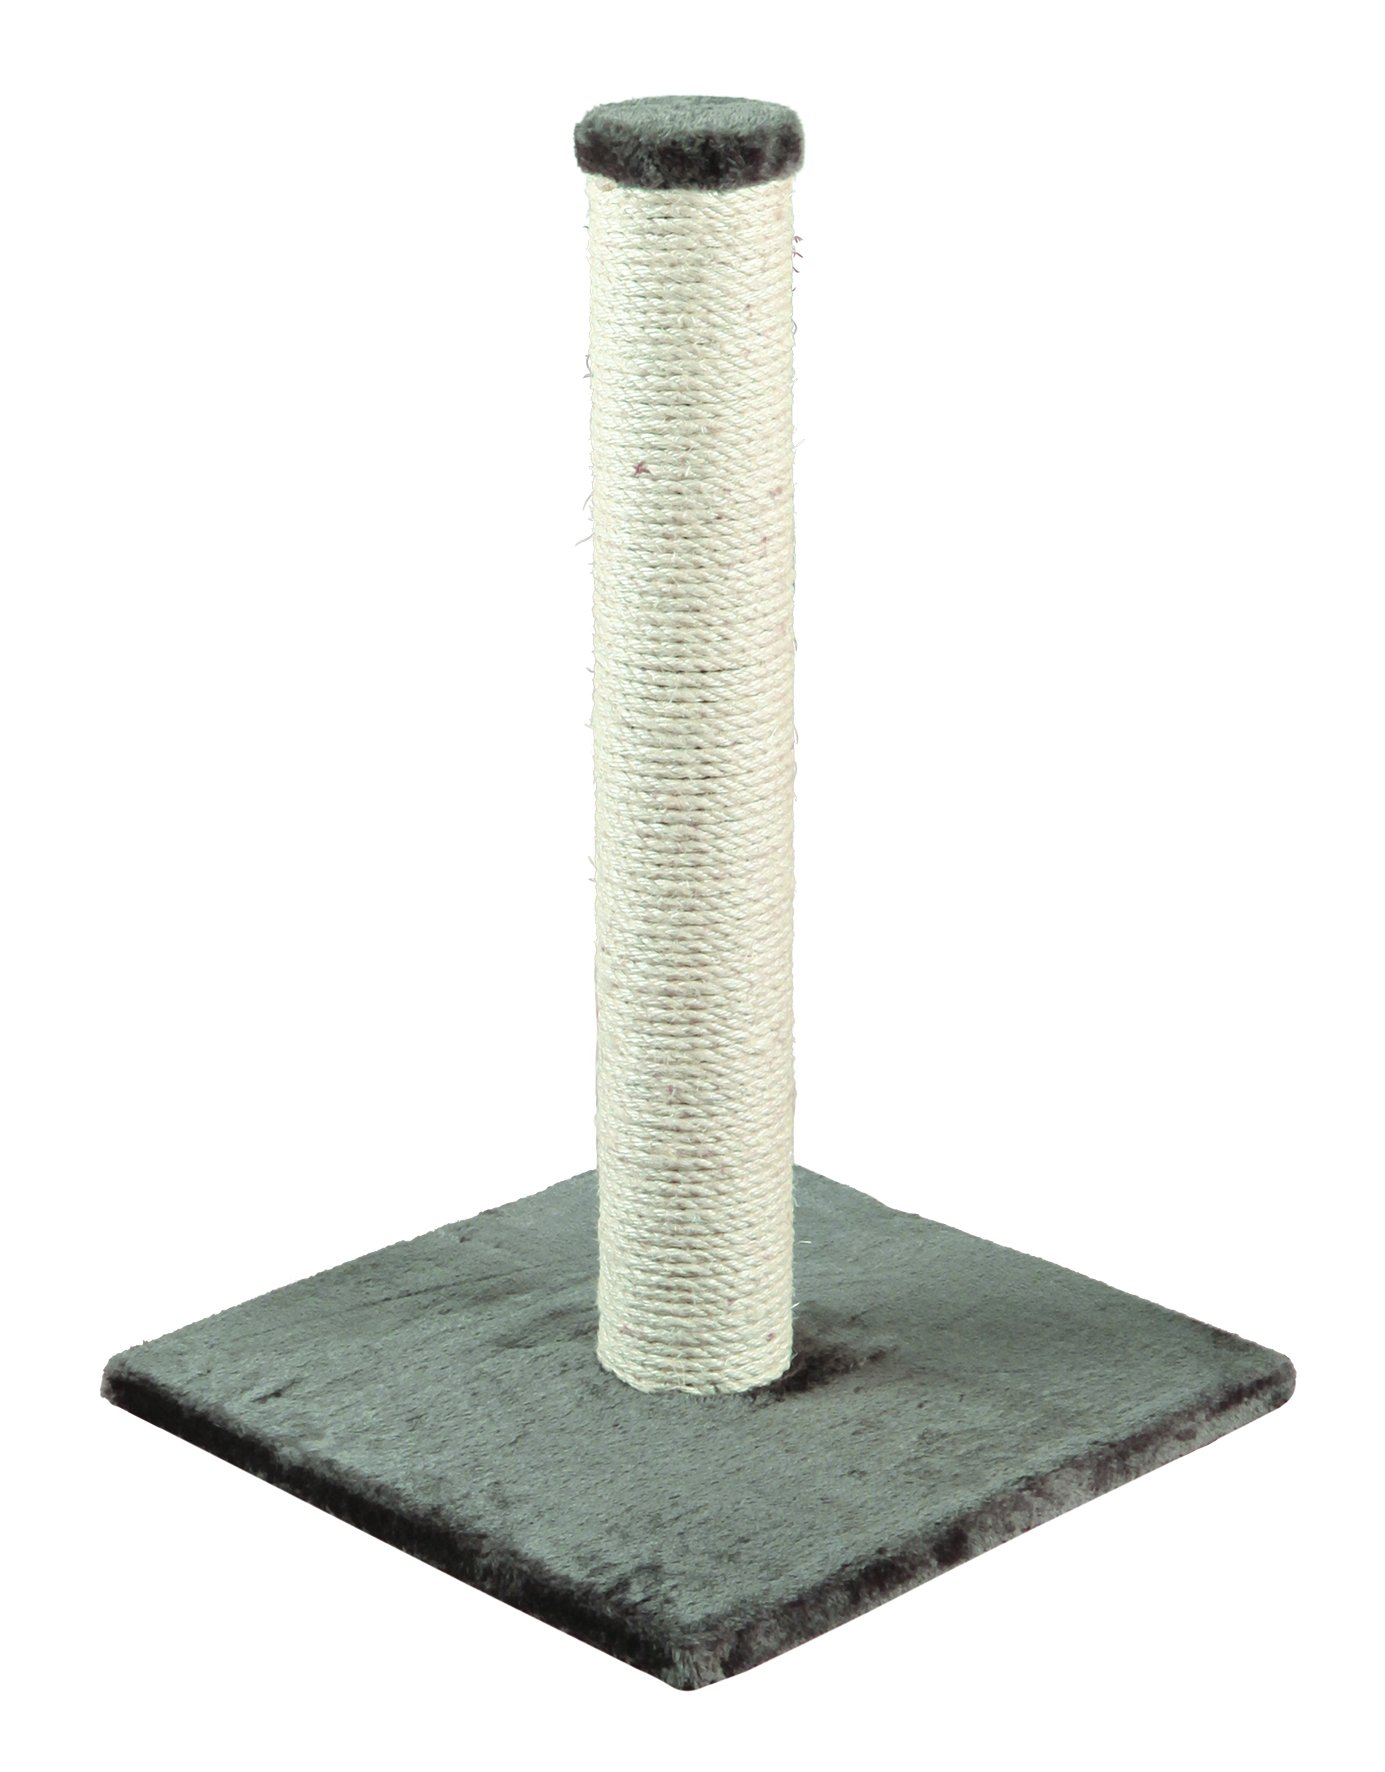 TRIXIE Pet Products Parla Scratching Post, Gray by Trixie